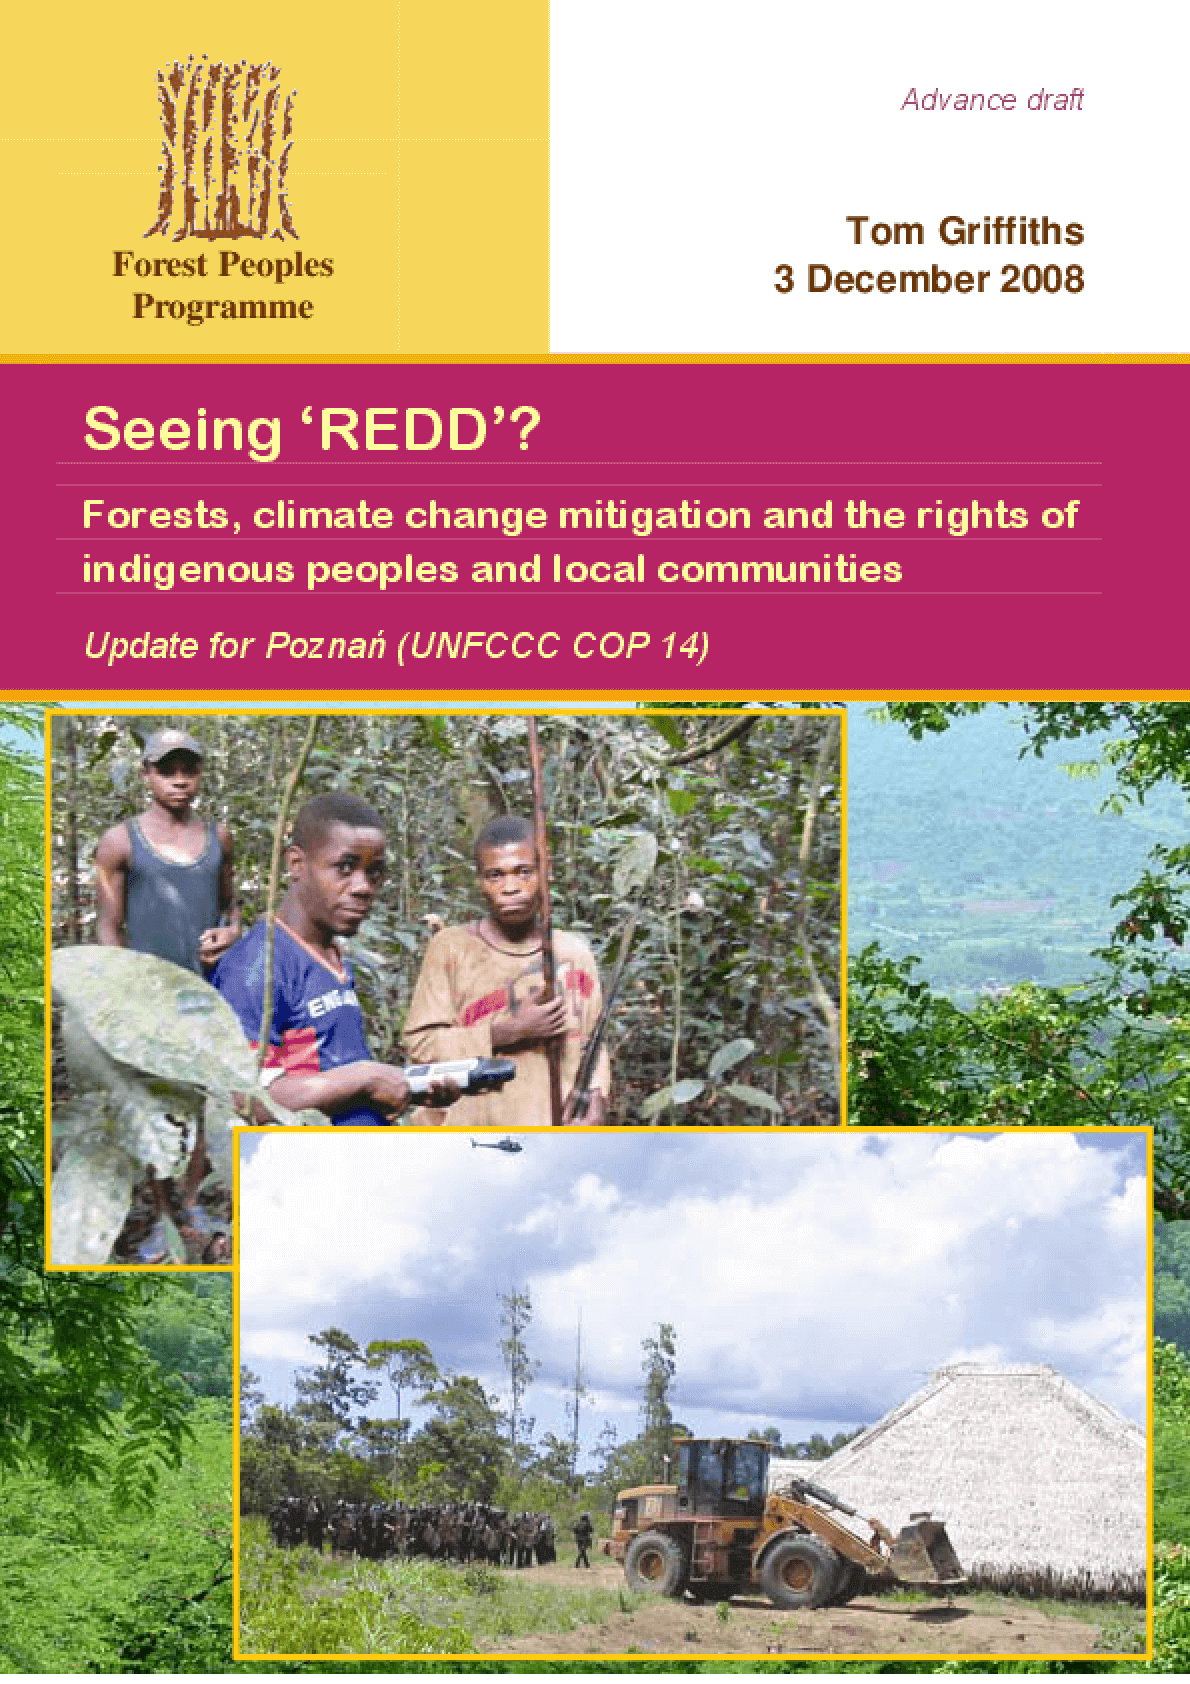 Seeing 'REDD'?: Forests, Climate Change Mitigation and the Rights of Indigenous Peoples